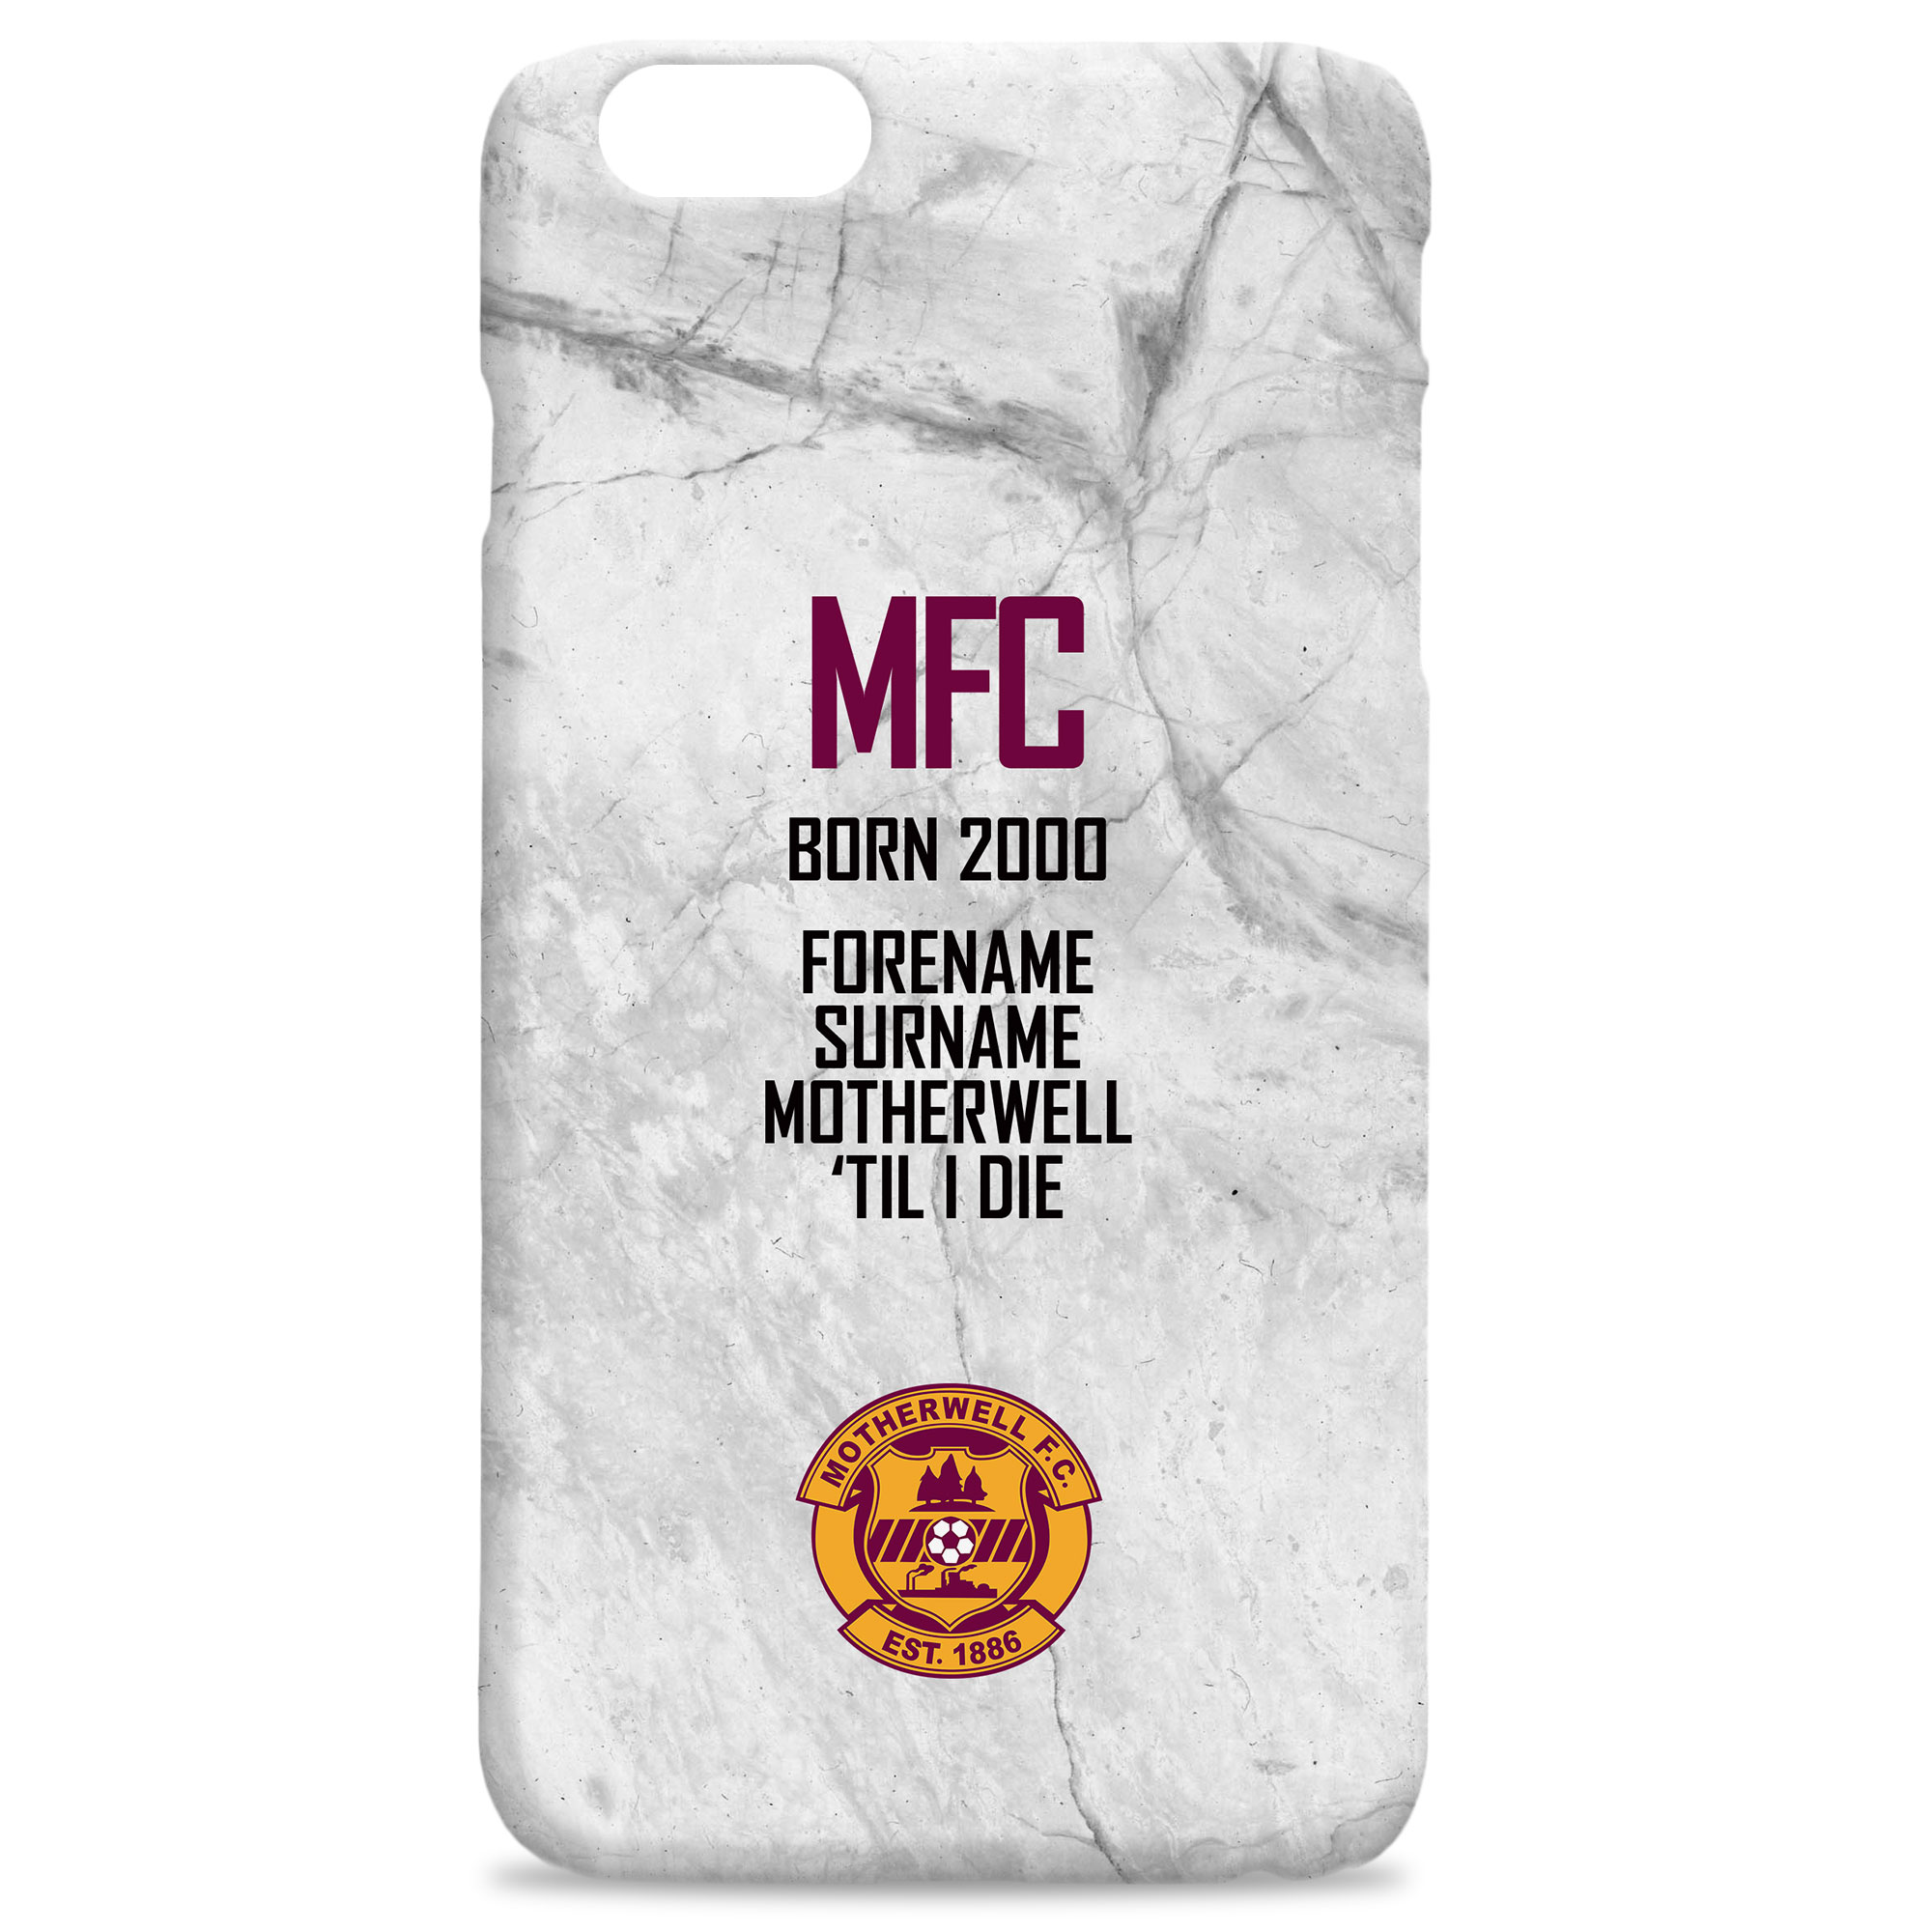 Motherwell FC 'Til I Die Hard Back Phone Case